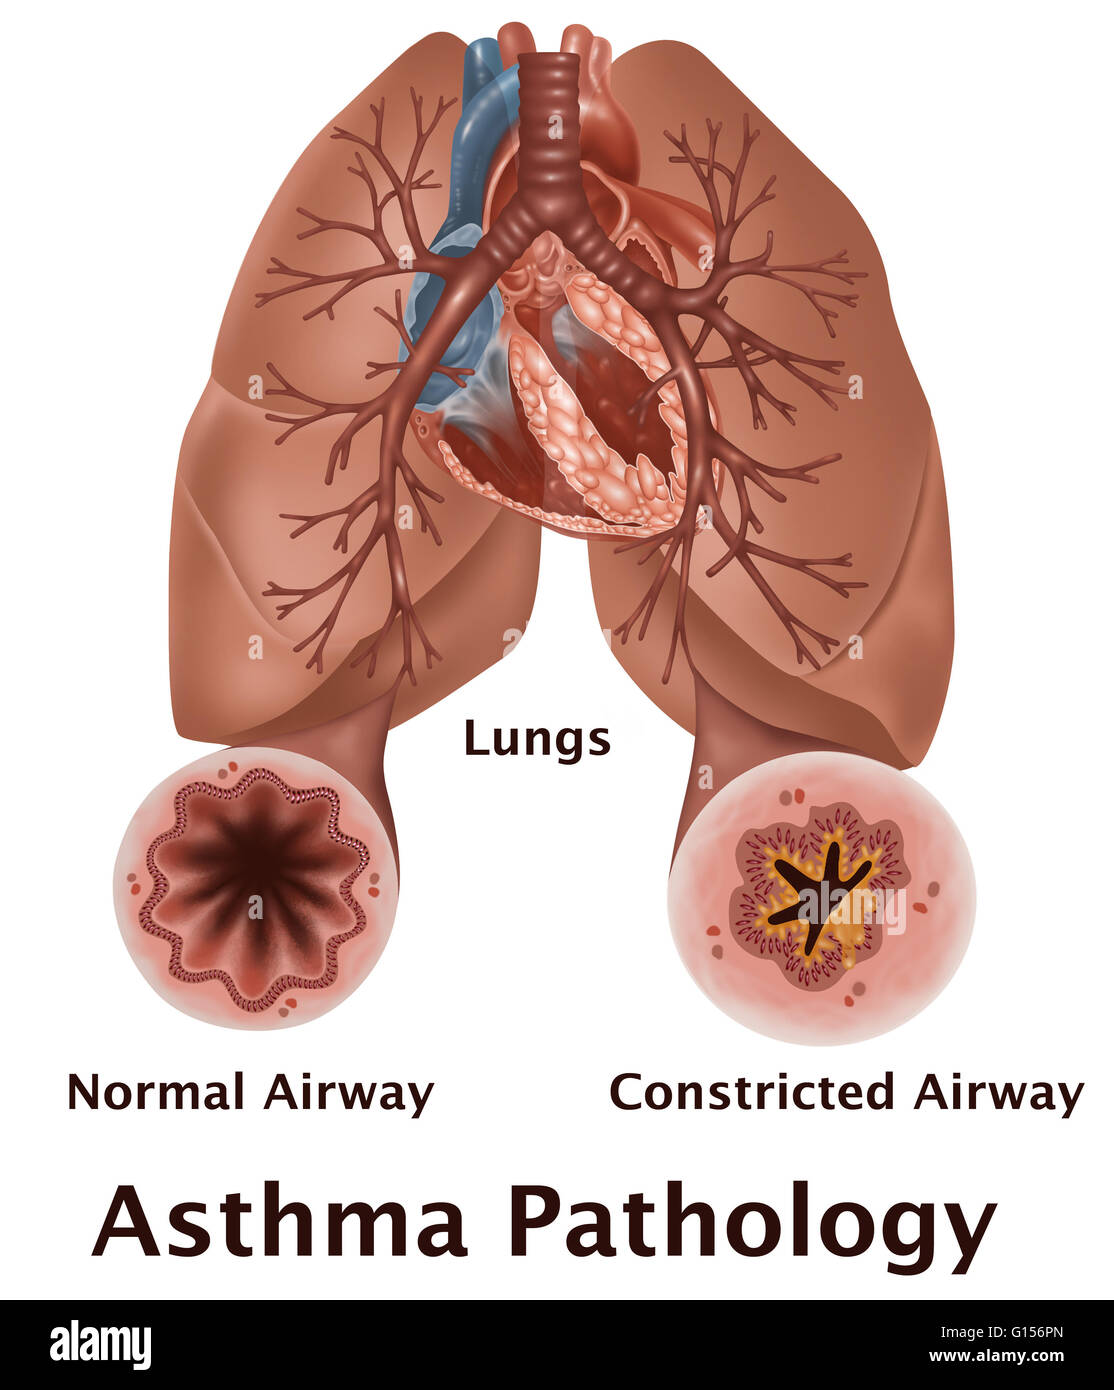 Asthma Pathology. An illustration of lungs with a normal airway ...